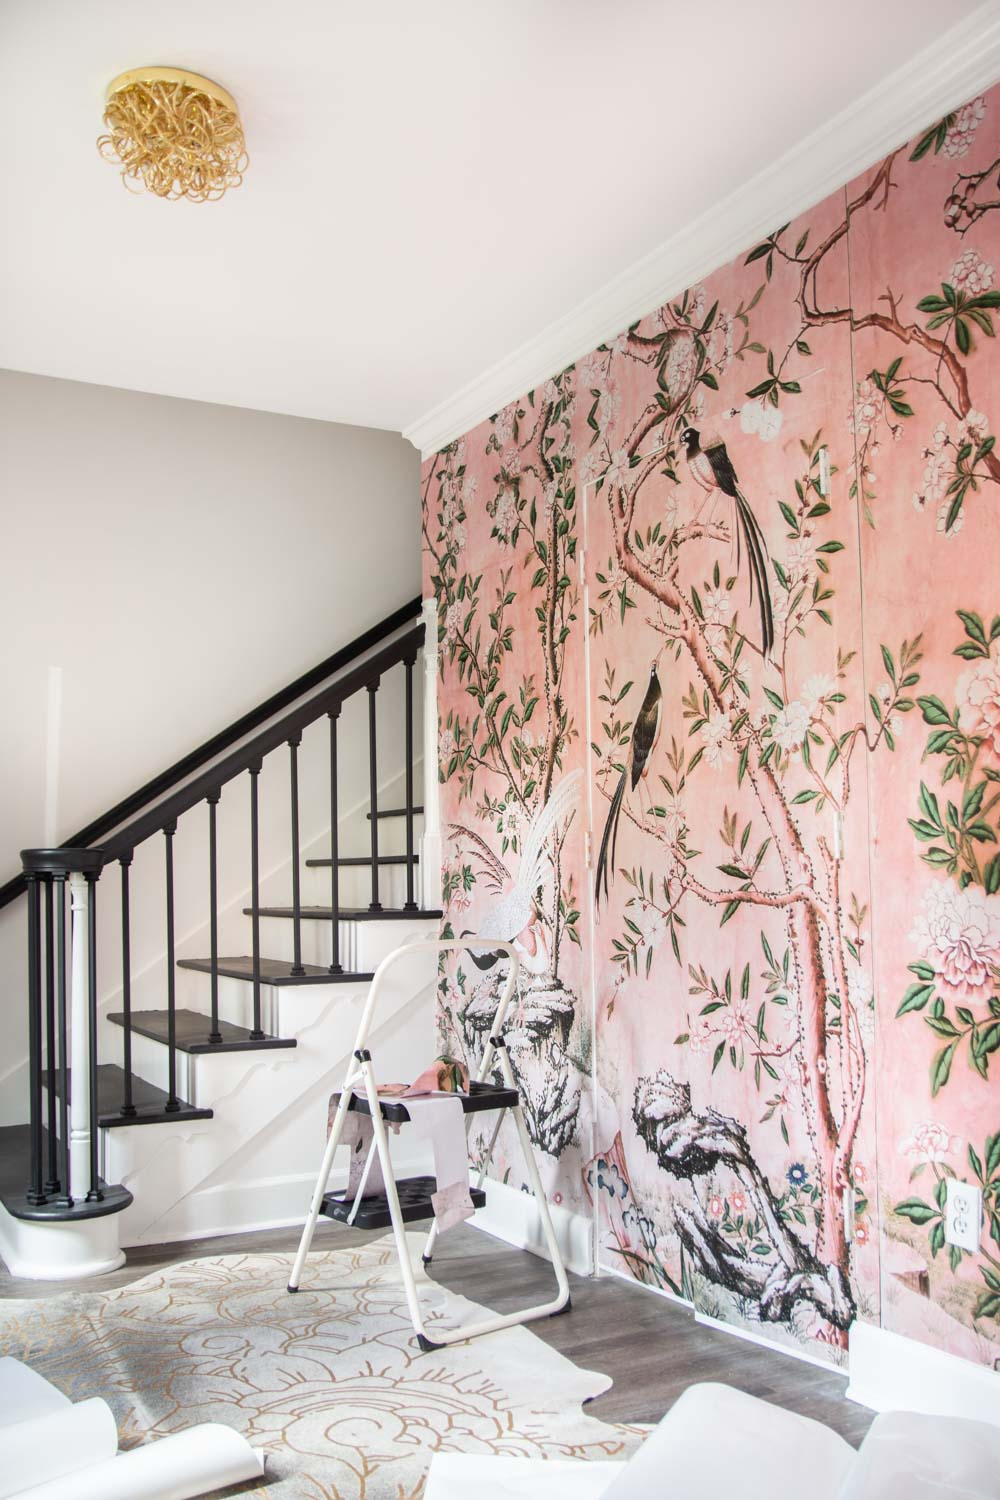 Living Room Wall Murals: Chinoiserie Landscape Pink Mural Entryway Installation